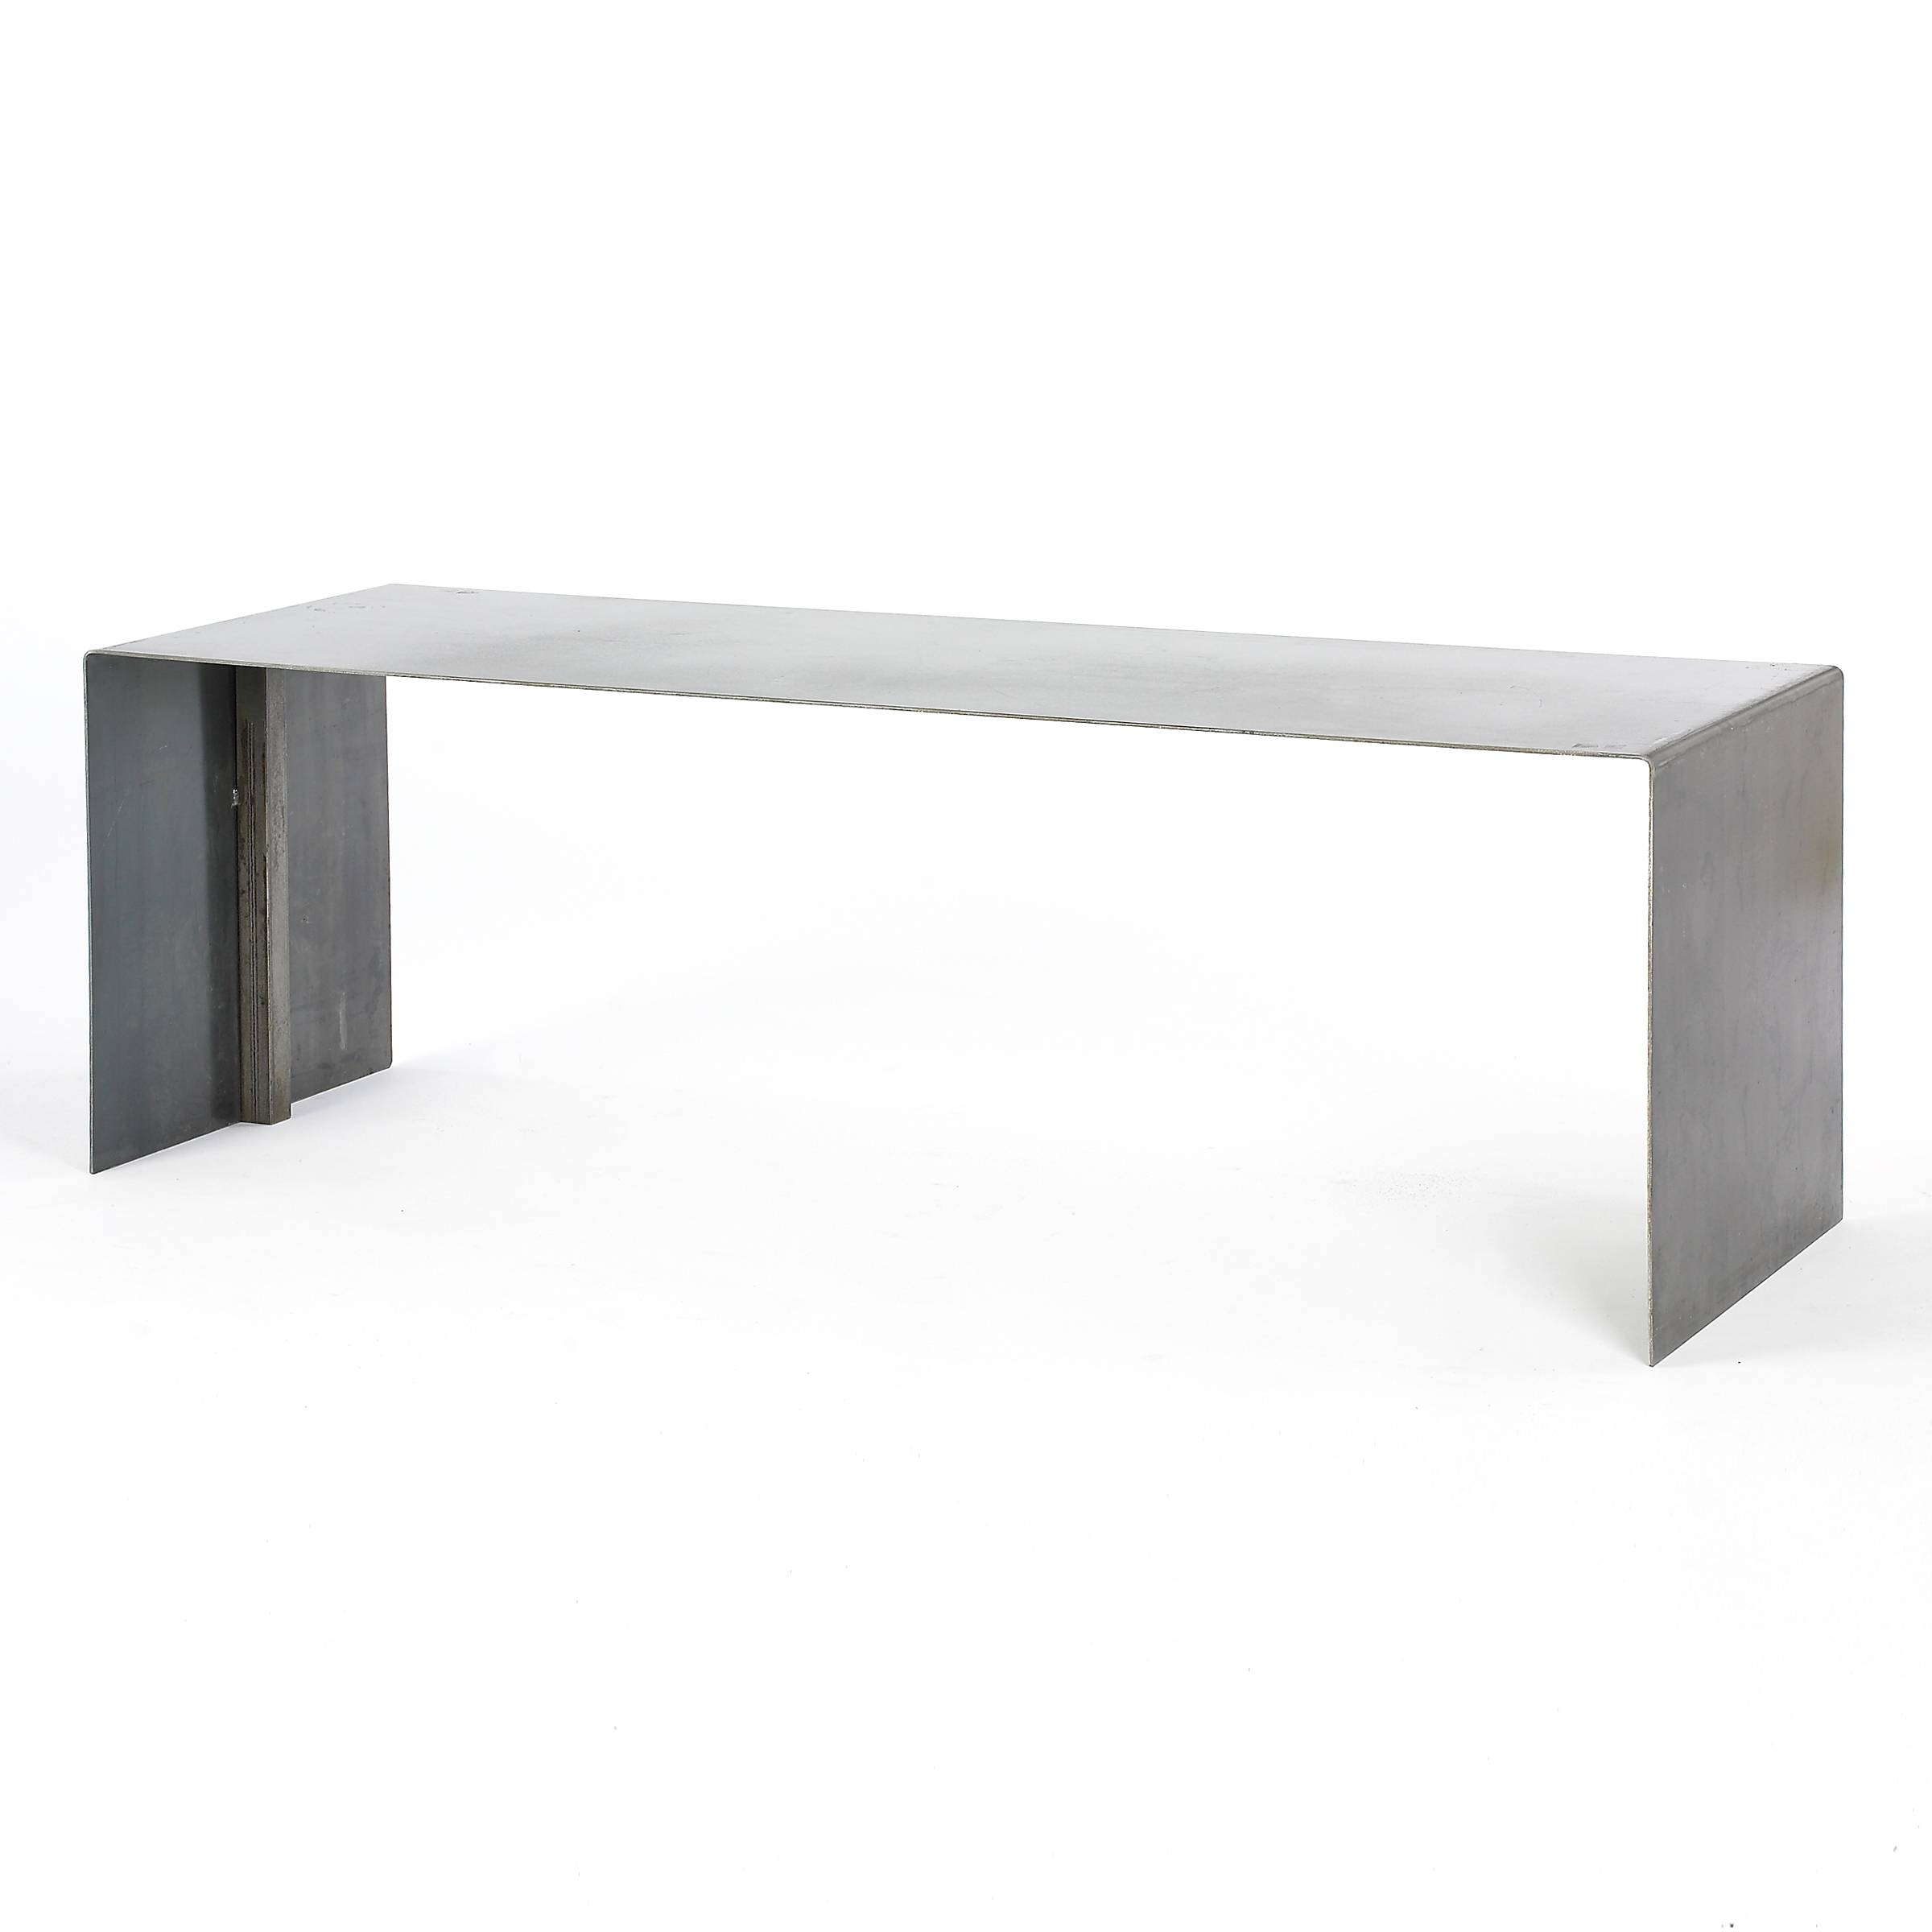 Metal Coffee Tablestal Coffee Tables Nz Tall Recular Table Is A throughout Metal Coffee Tables (Image 25 of 30)